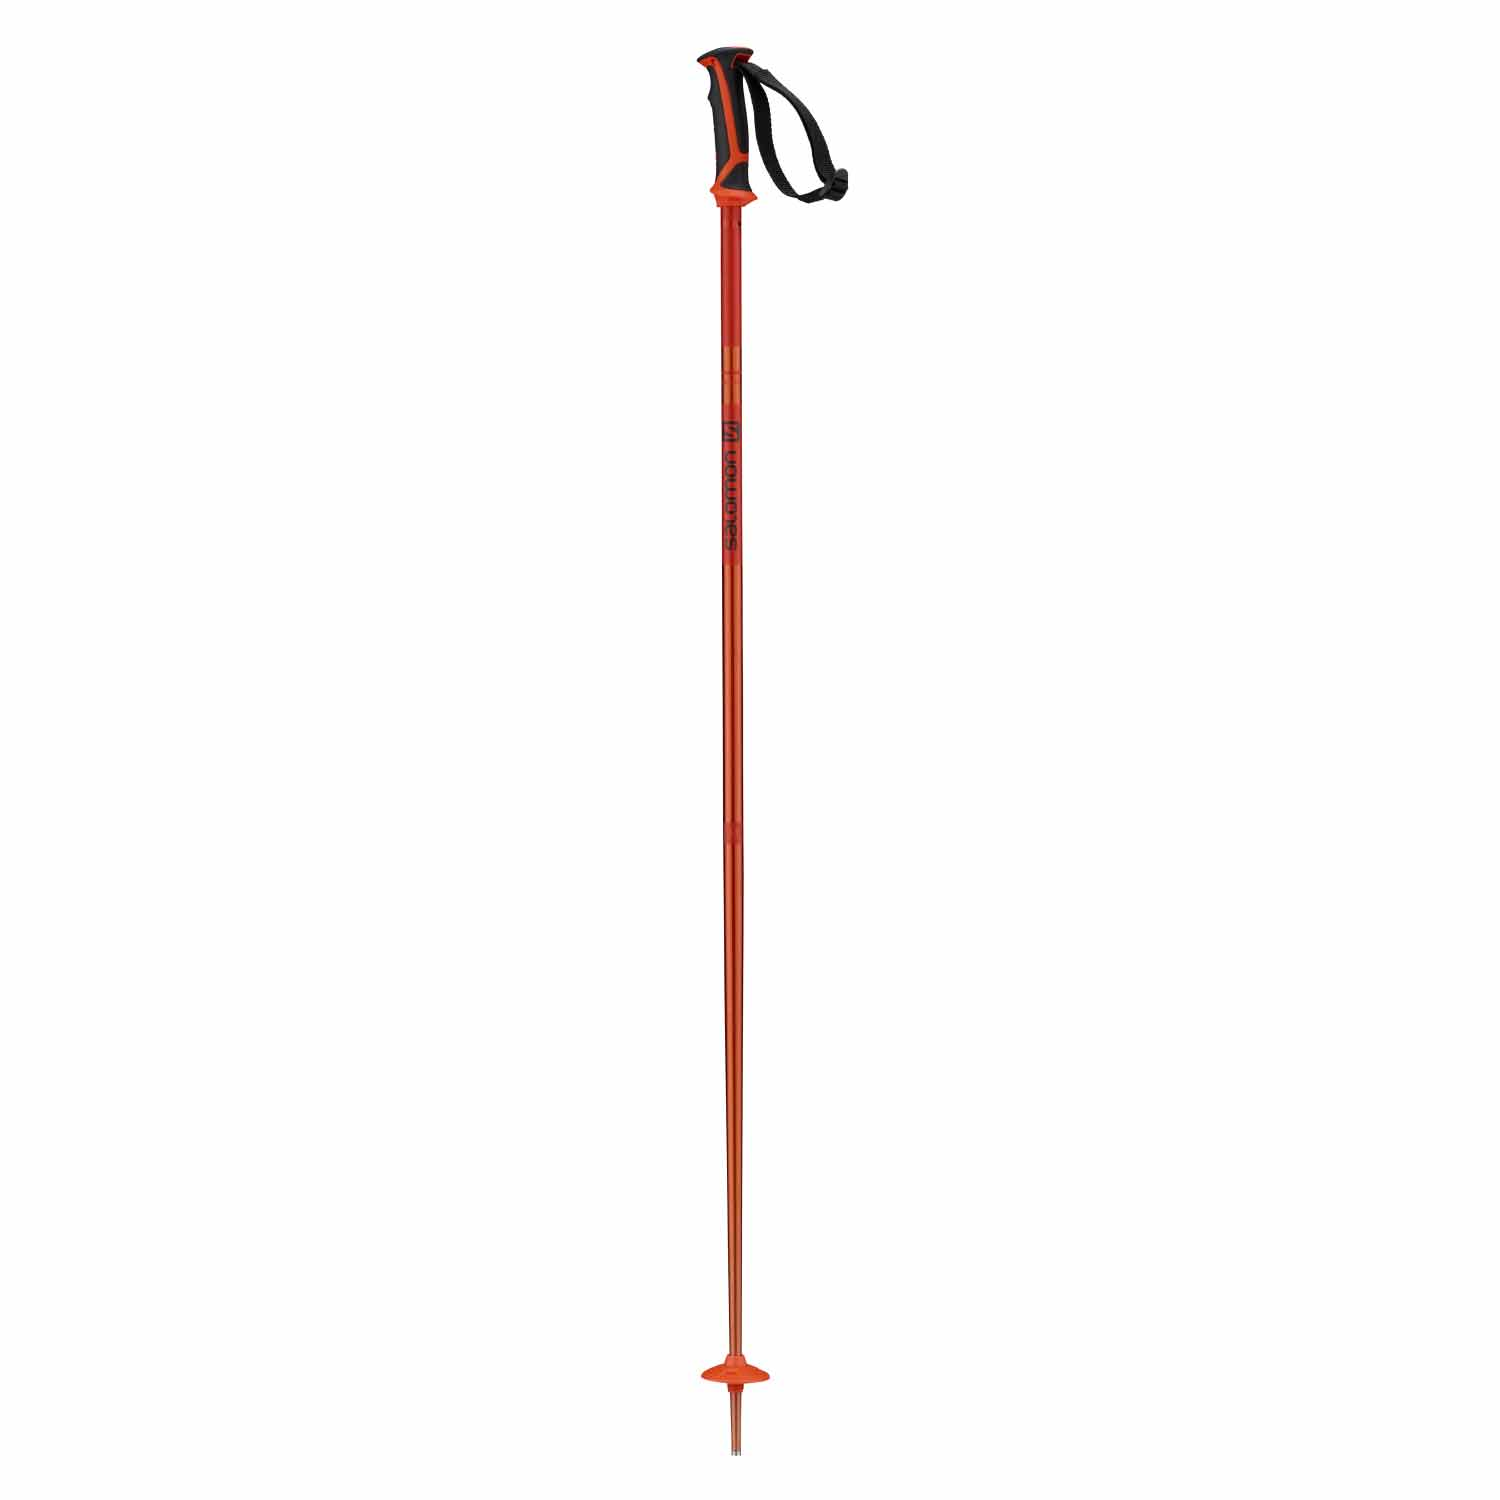 Salomon Arctic Ski Pole Orange 2020